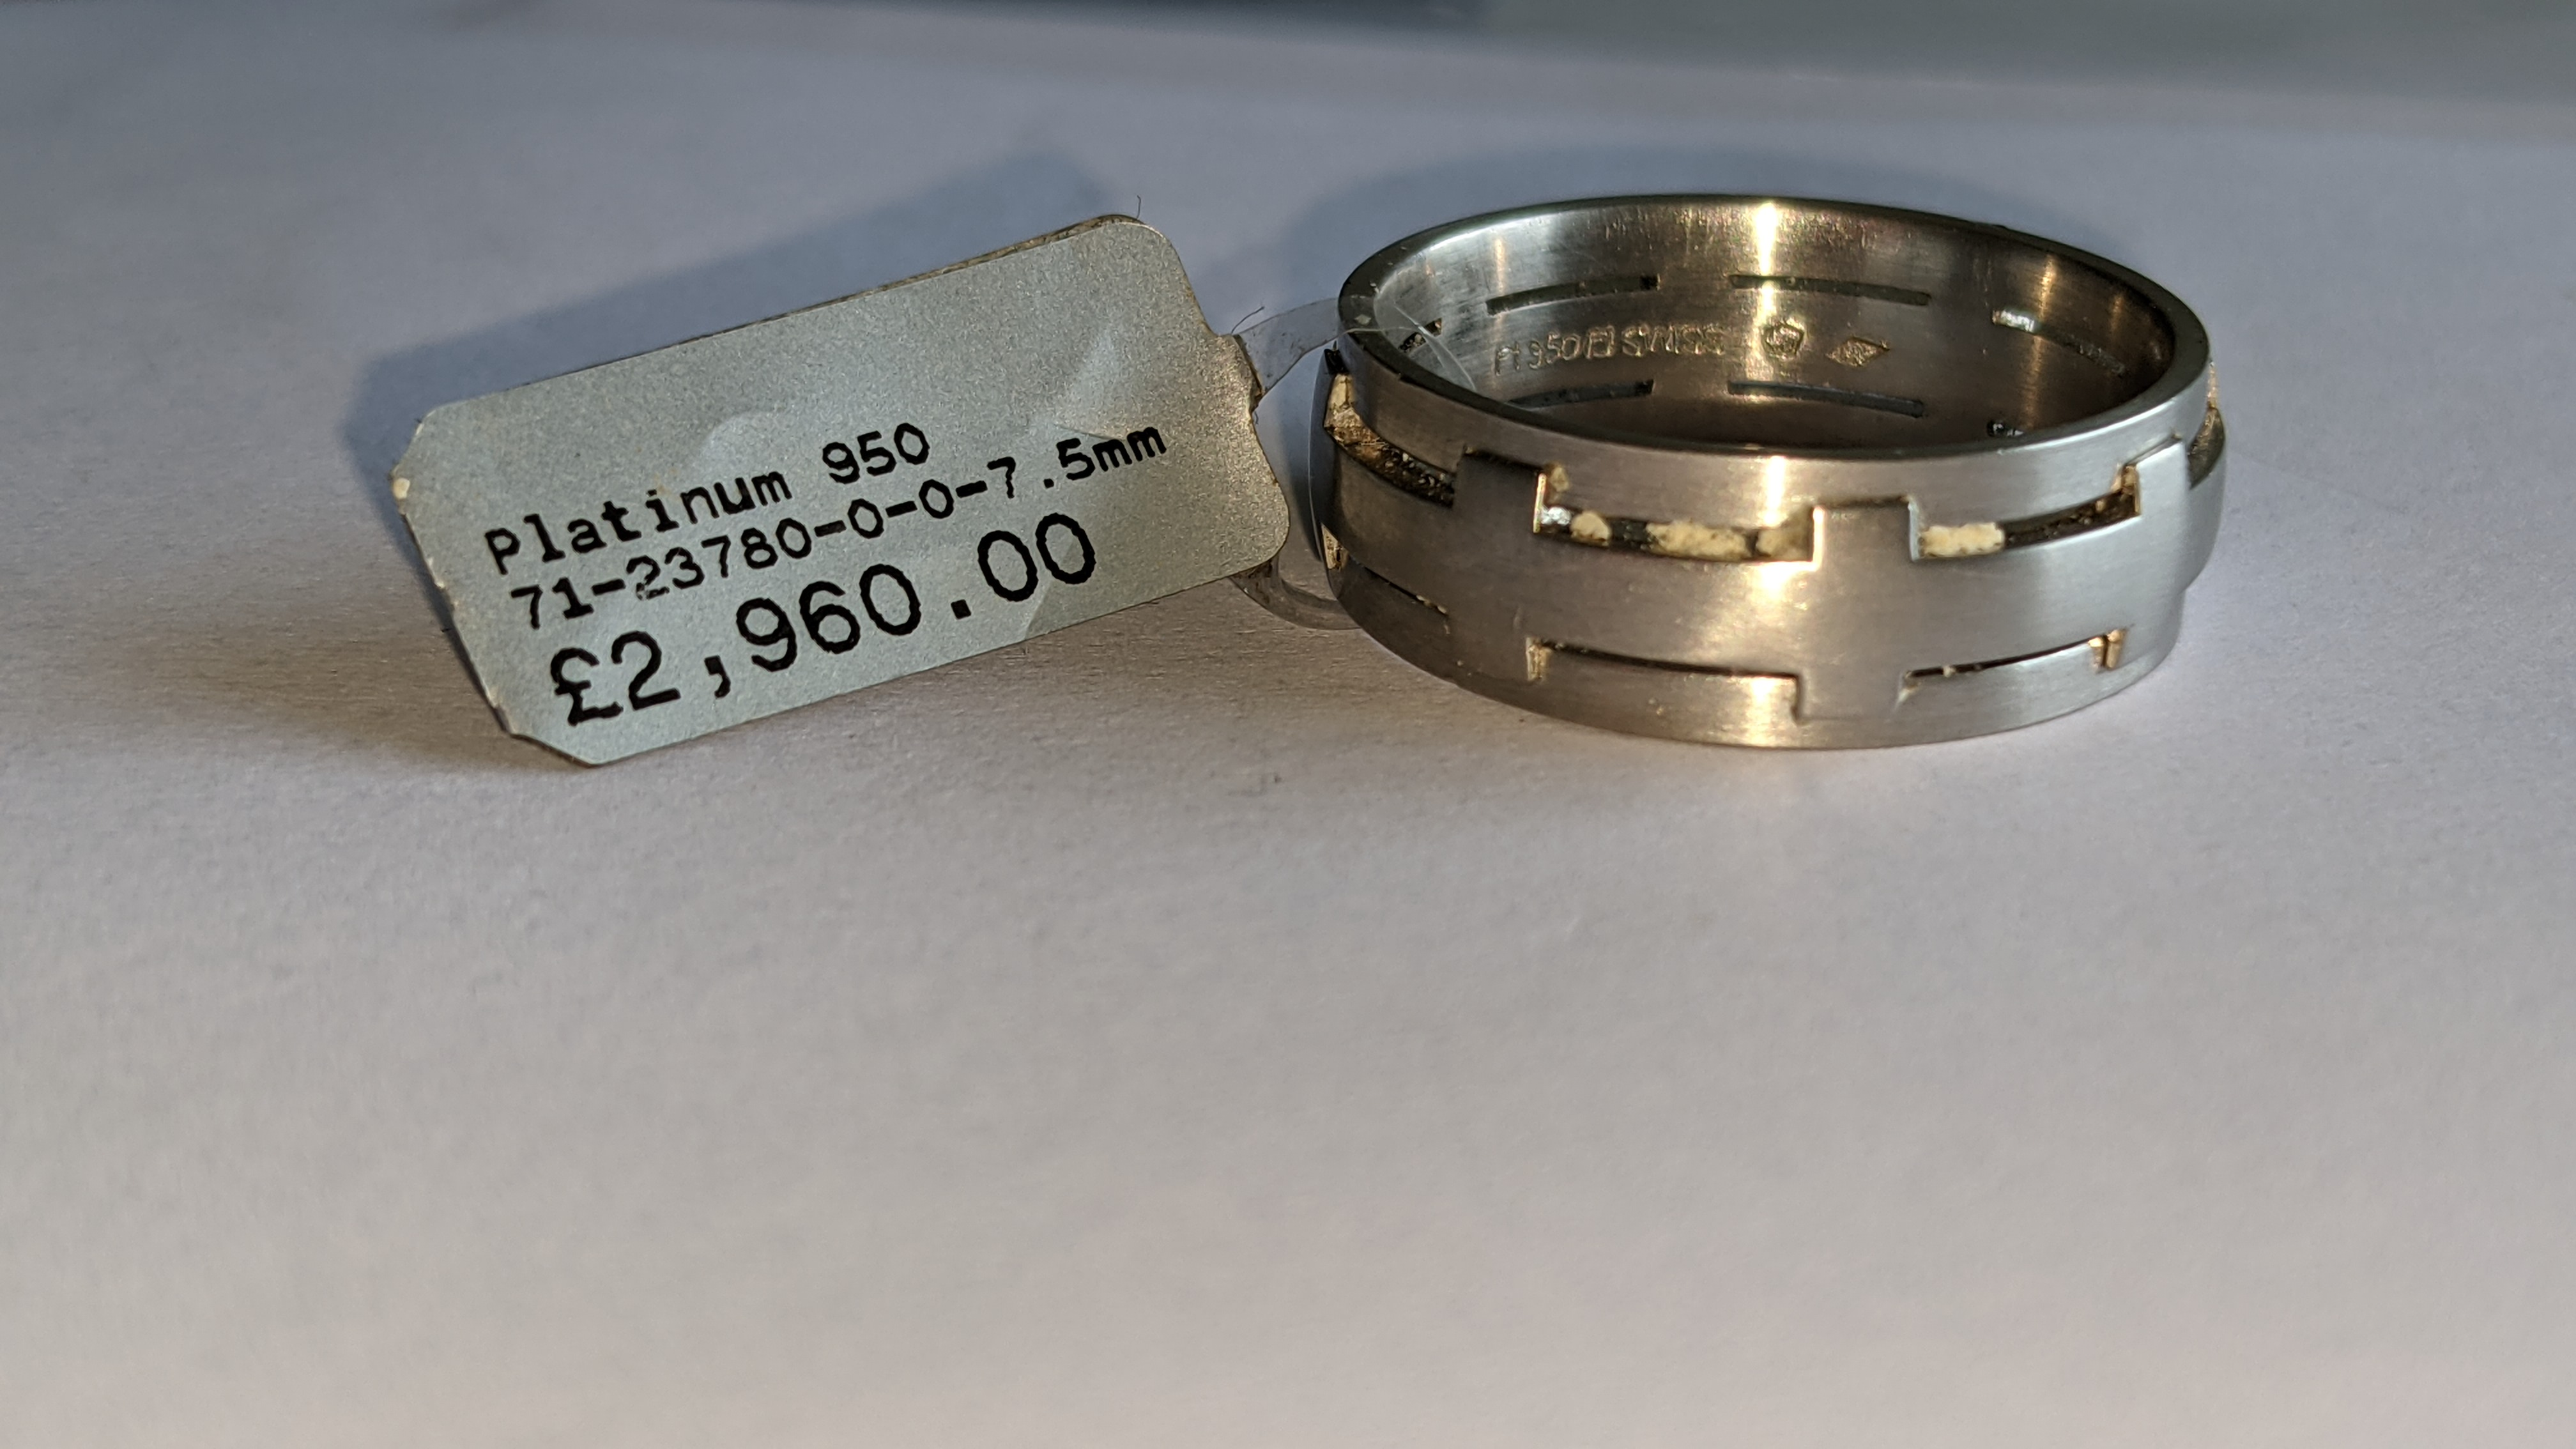 Platinum 950 ring in matt & polished finish, 7.5mm wide. RRP £2,960 - Image 7 of 15